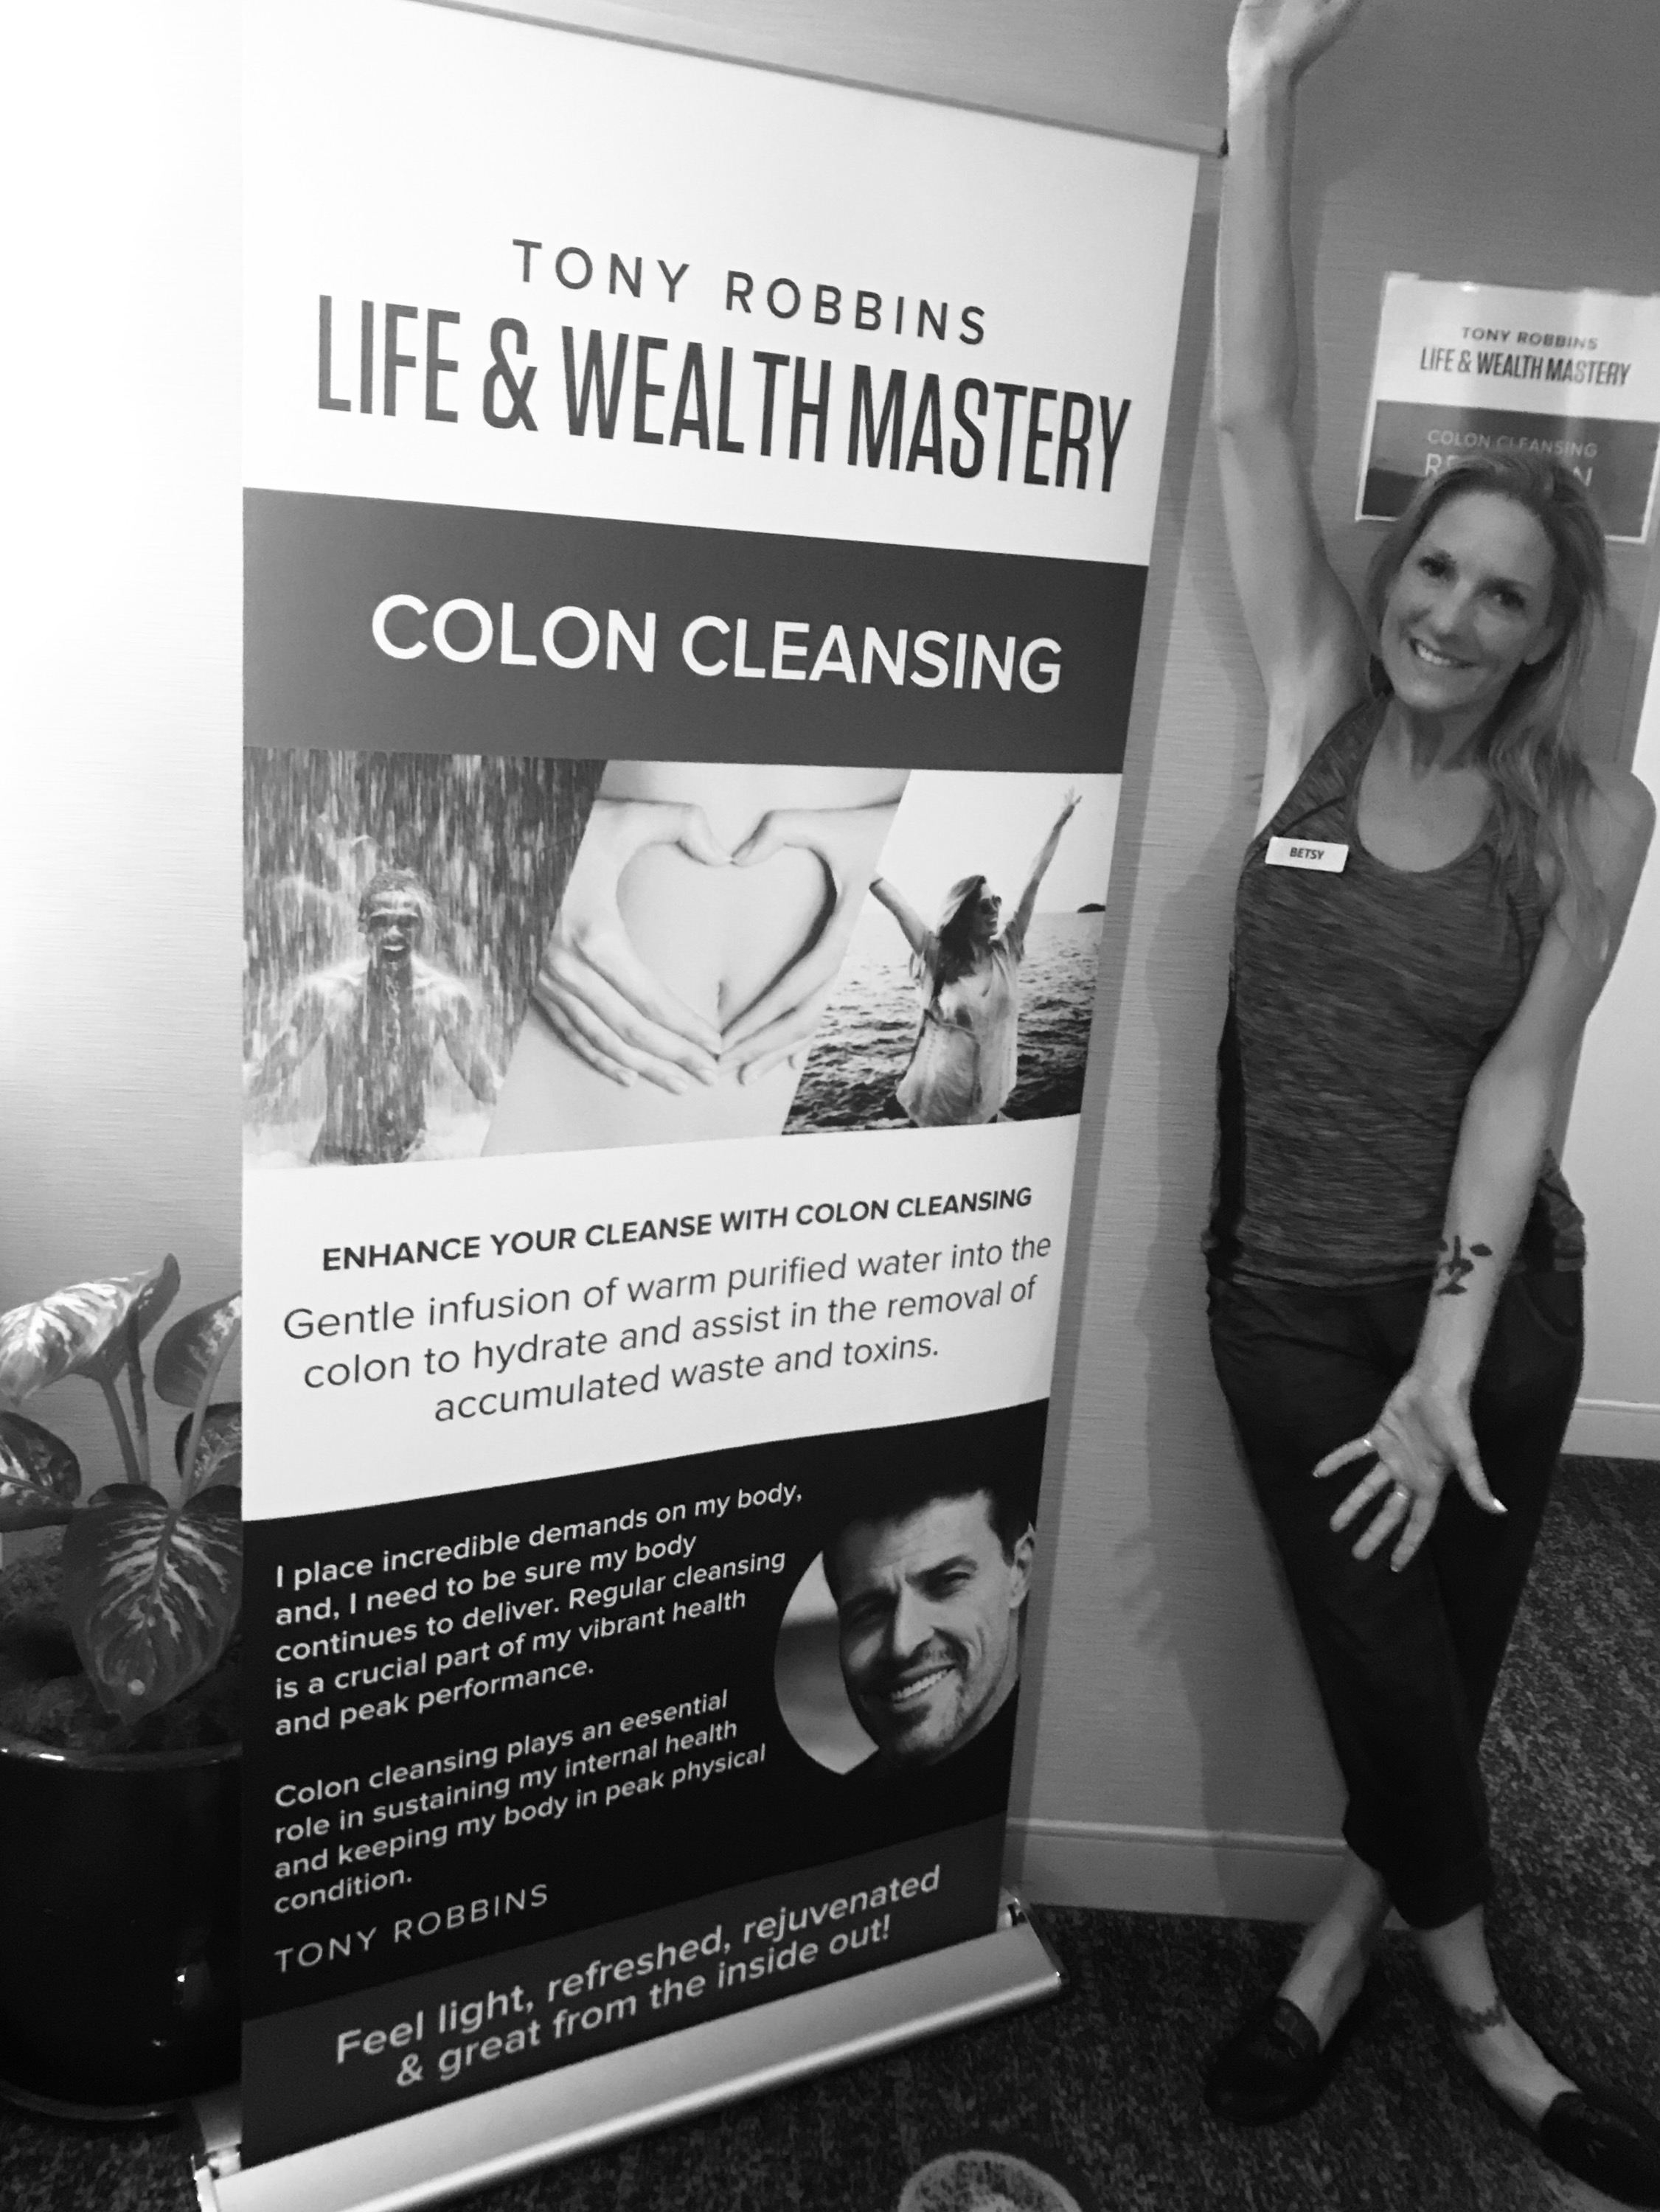 Pure On Main's own Betsy Exton has been assisting Tony Robbins for the past 6 years, performing colon cleansing for his event participants.